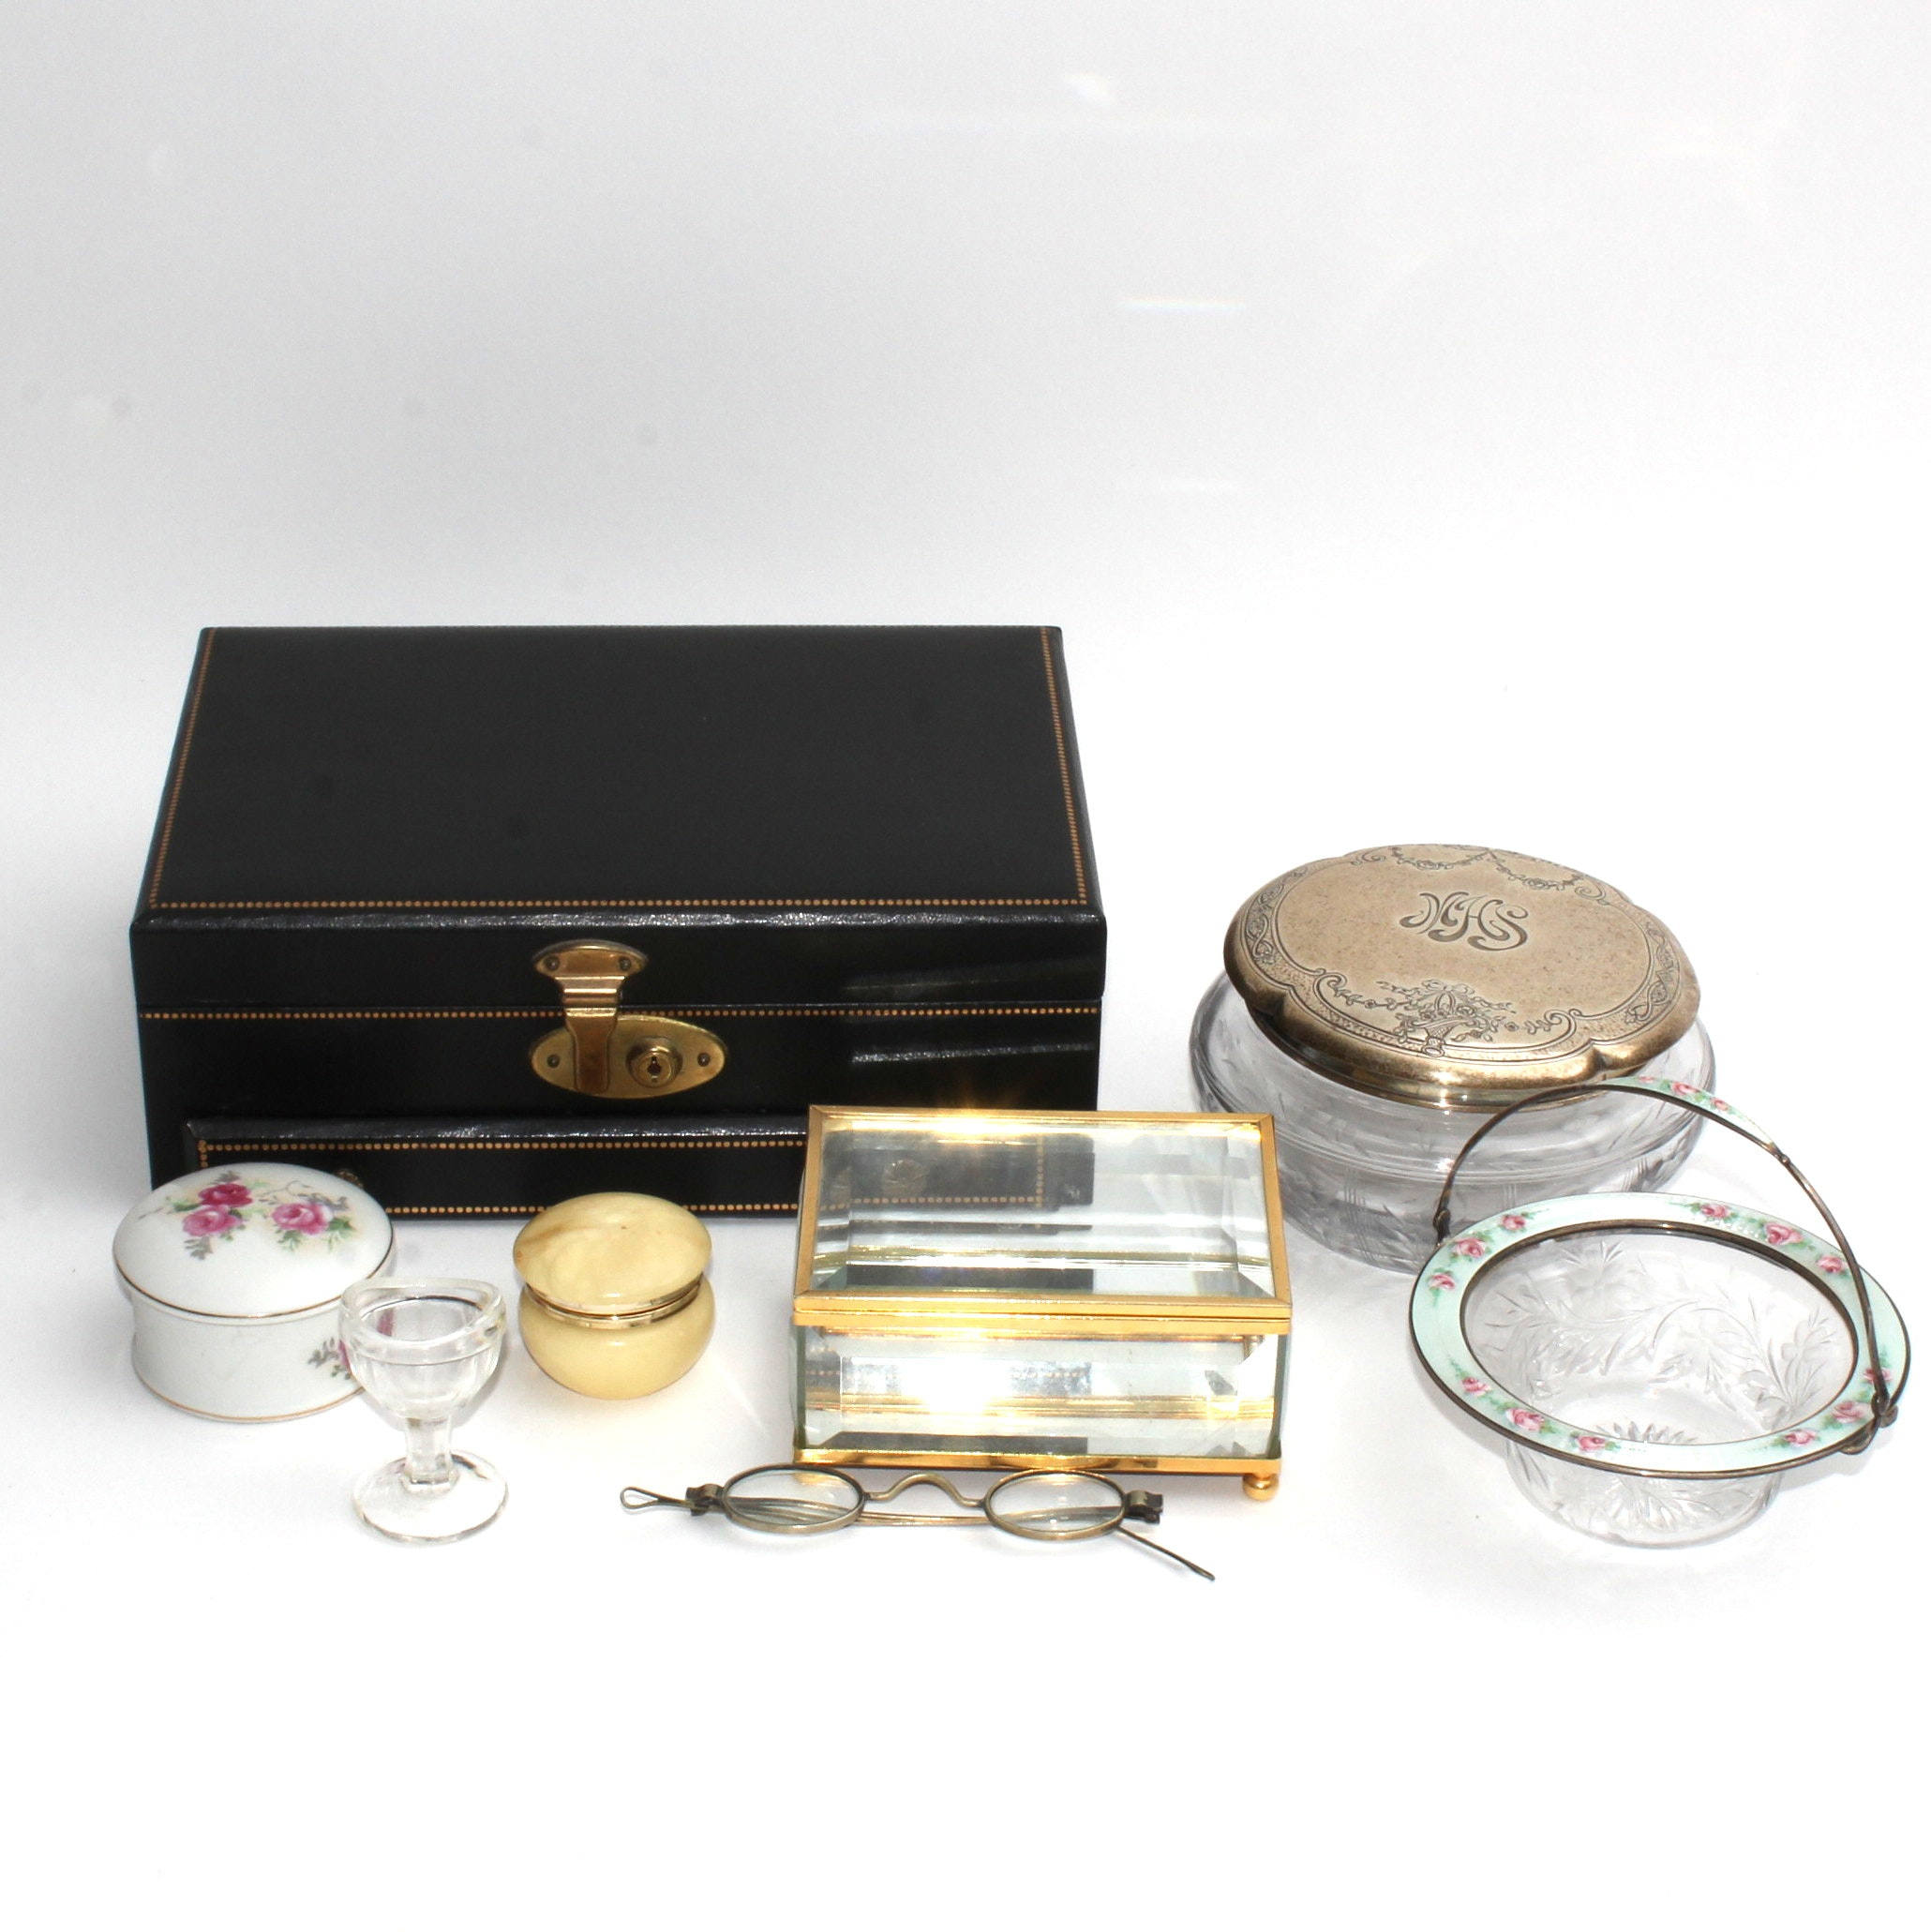 Dresser Items and Vintage Personal Effects